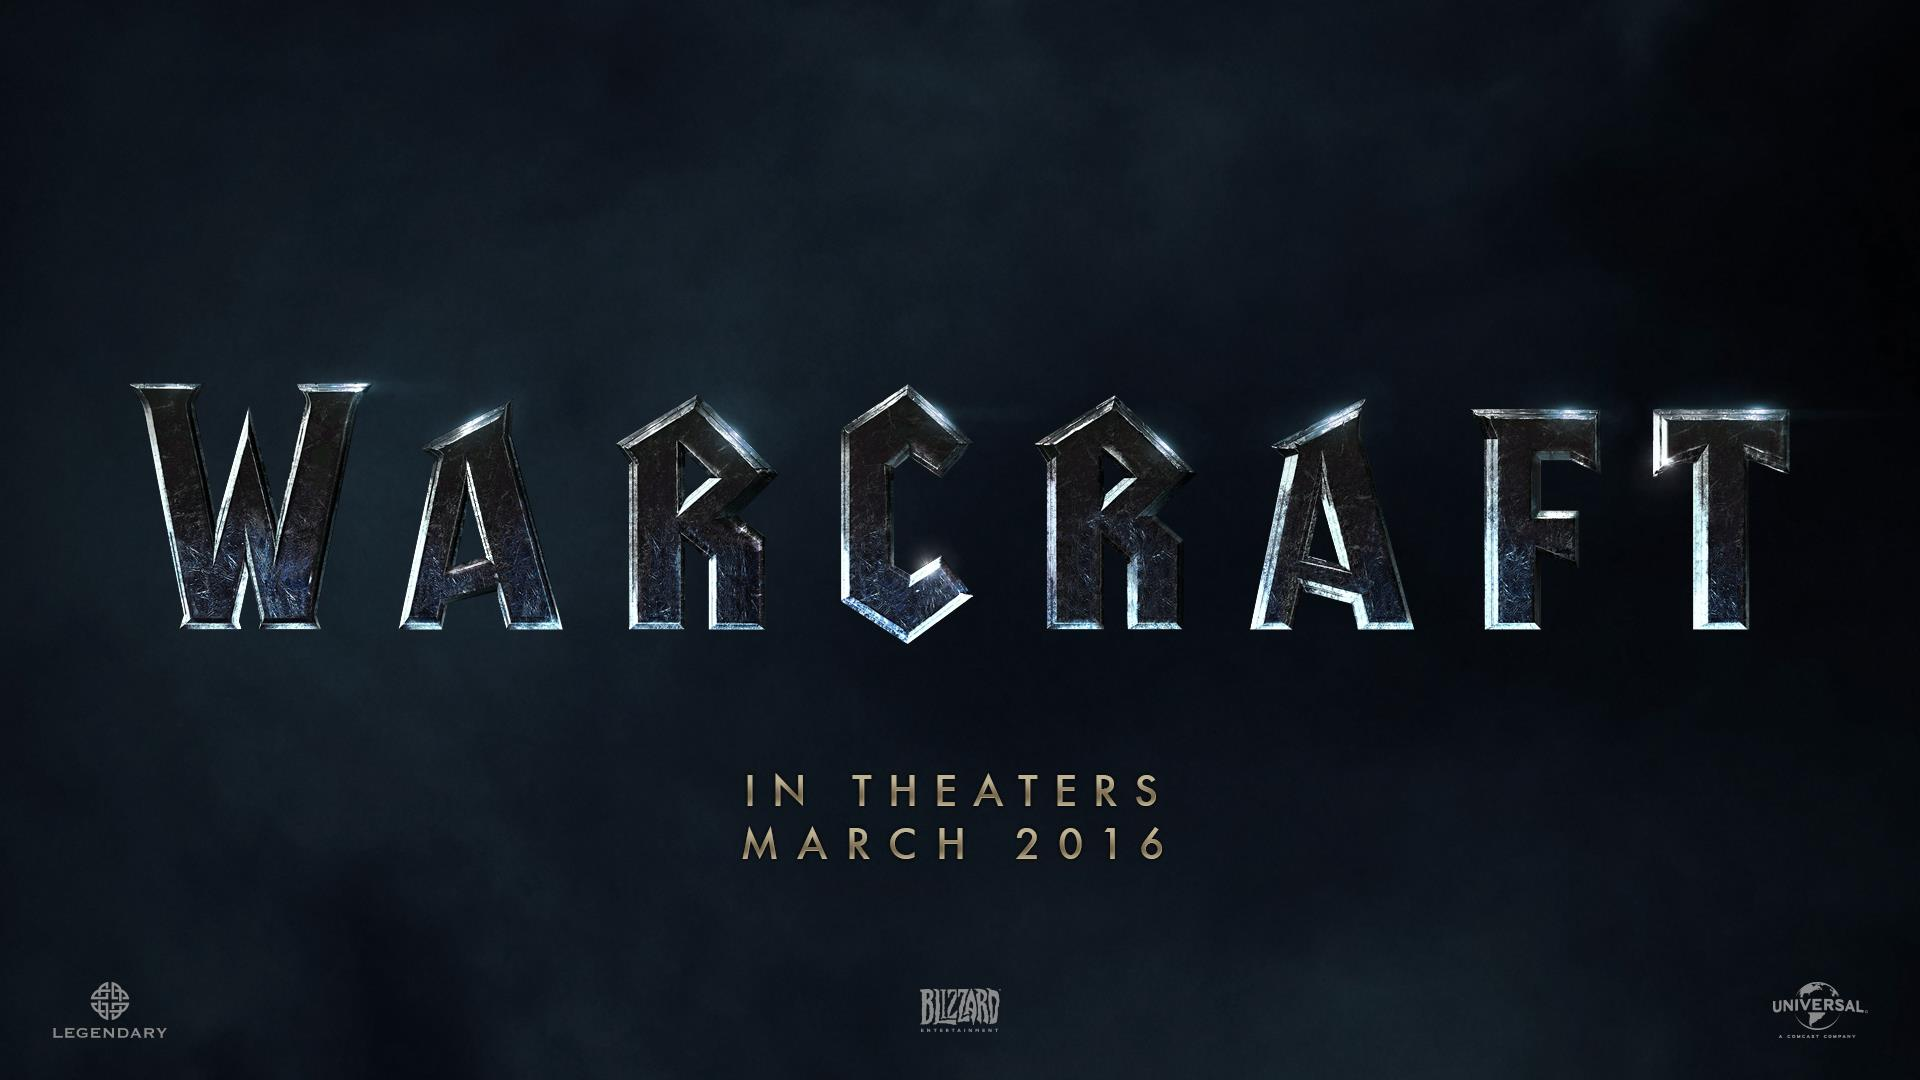 warcraft-3d-wallpaper-gross